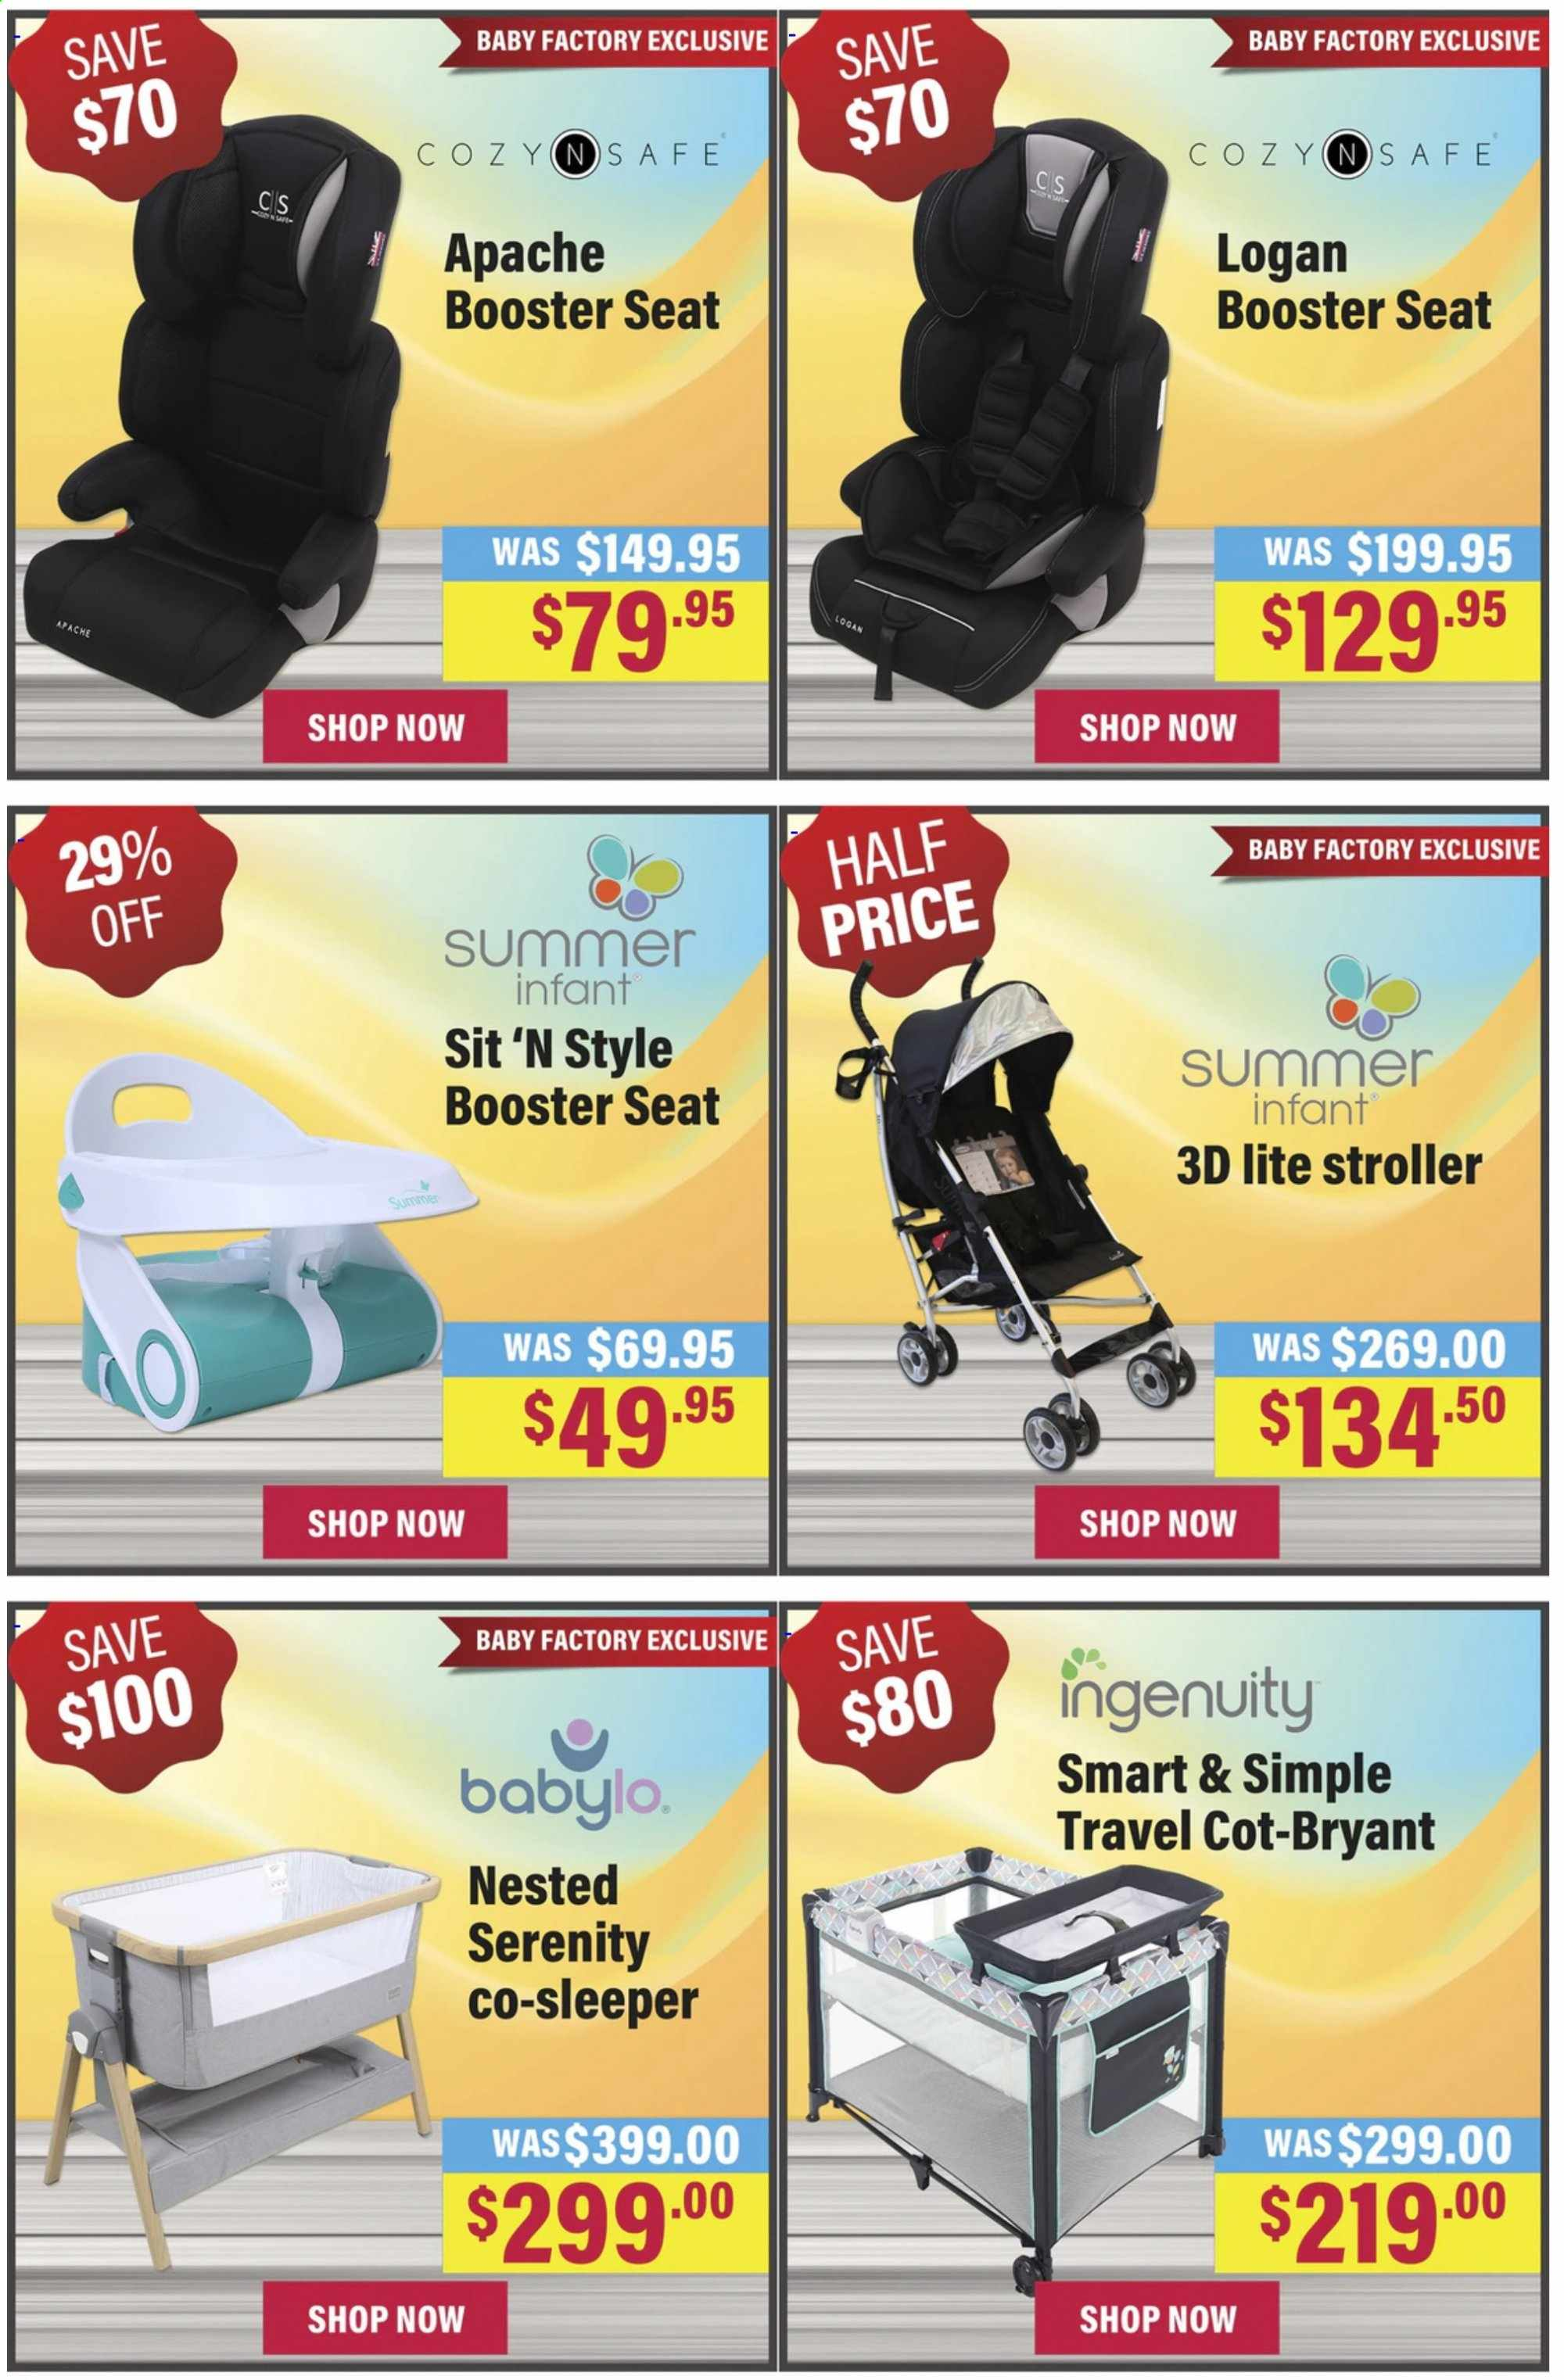 The Baby Factory mailer - 12.01.2020 - 26.01.2020 - Sales products - Ingenuity, stroller. Page 4.